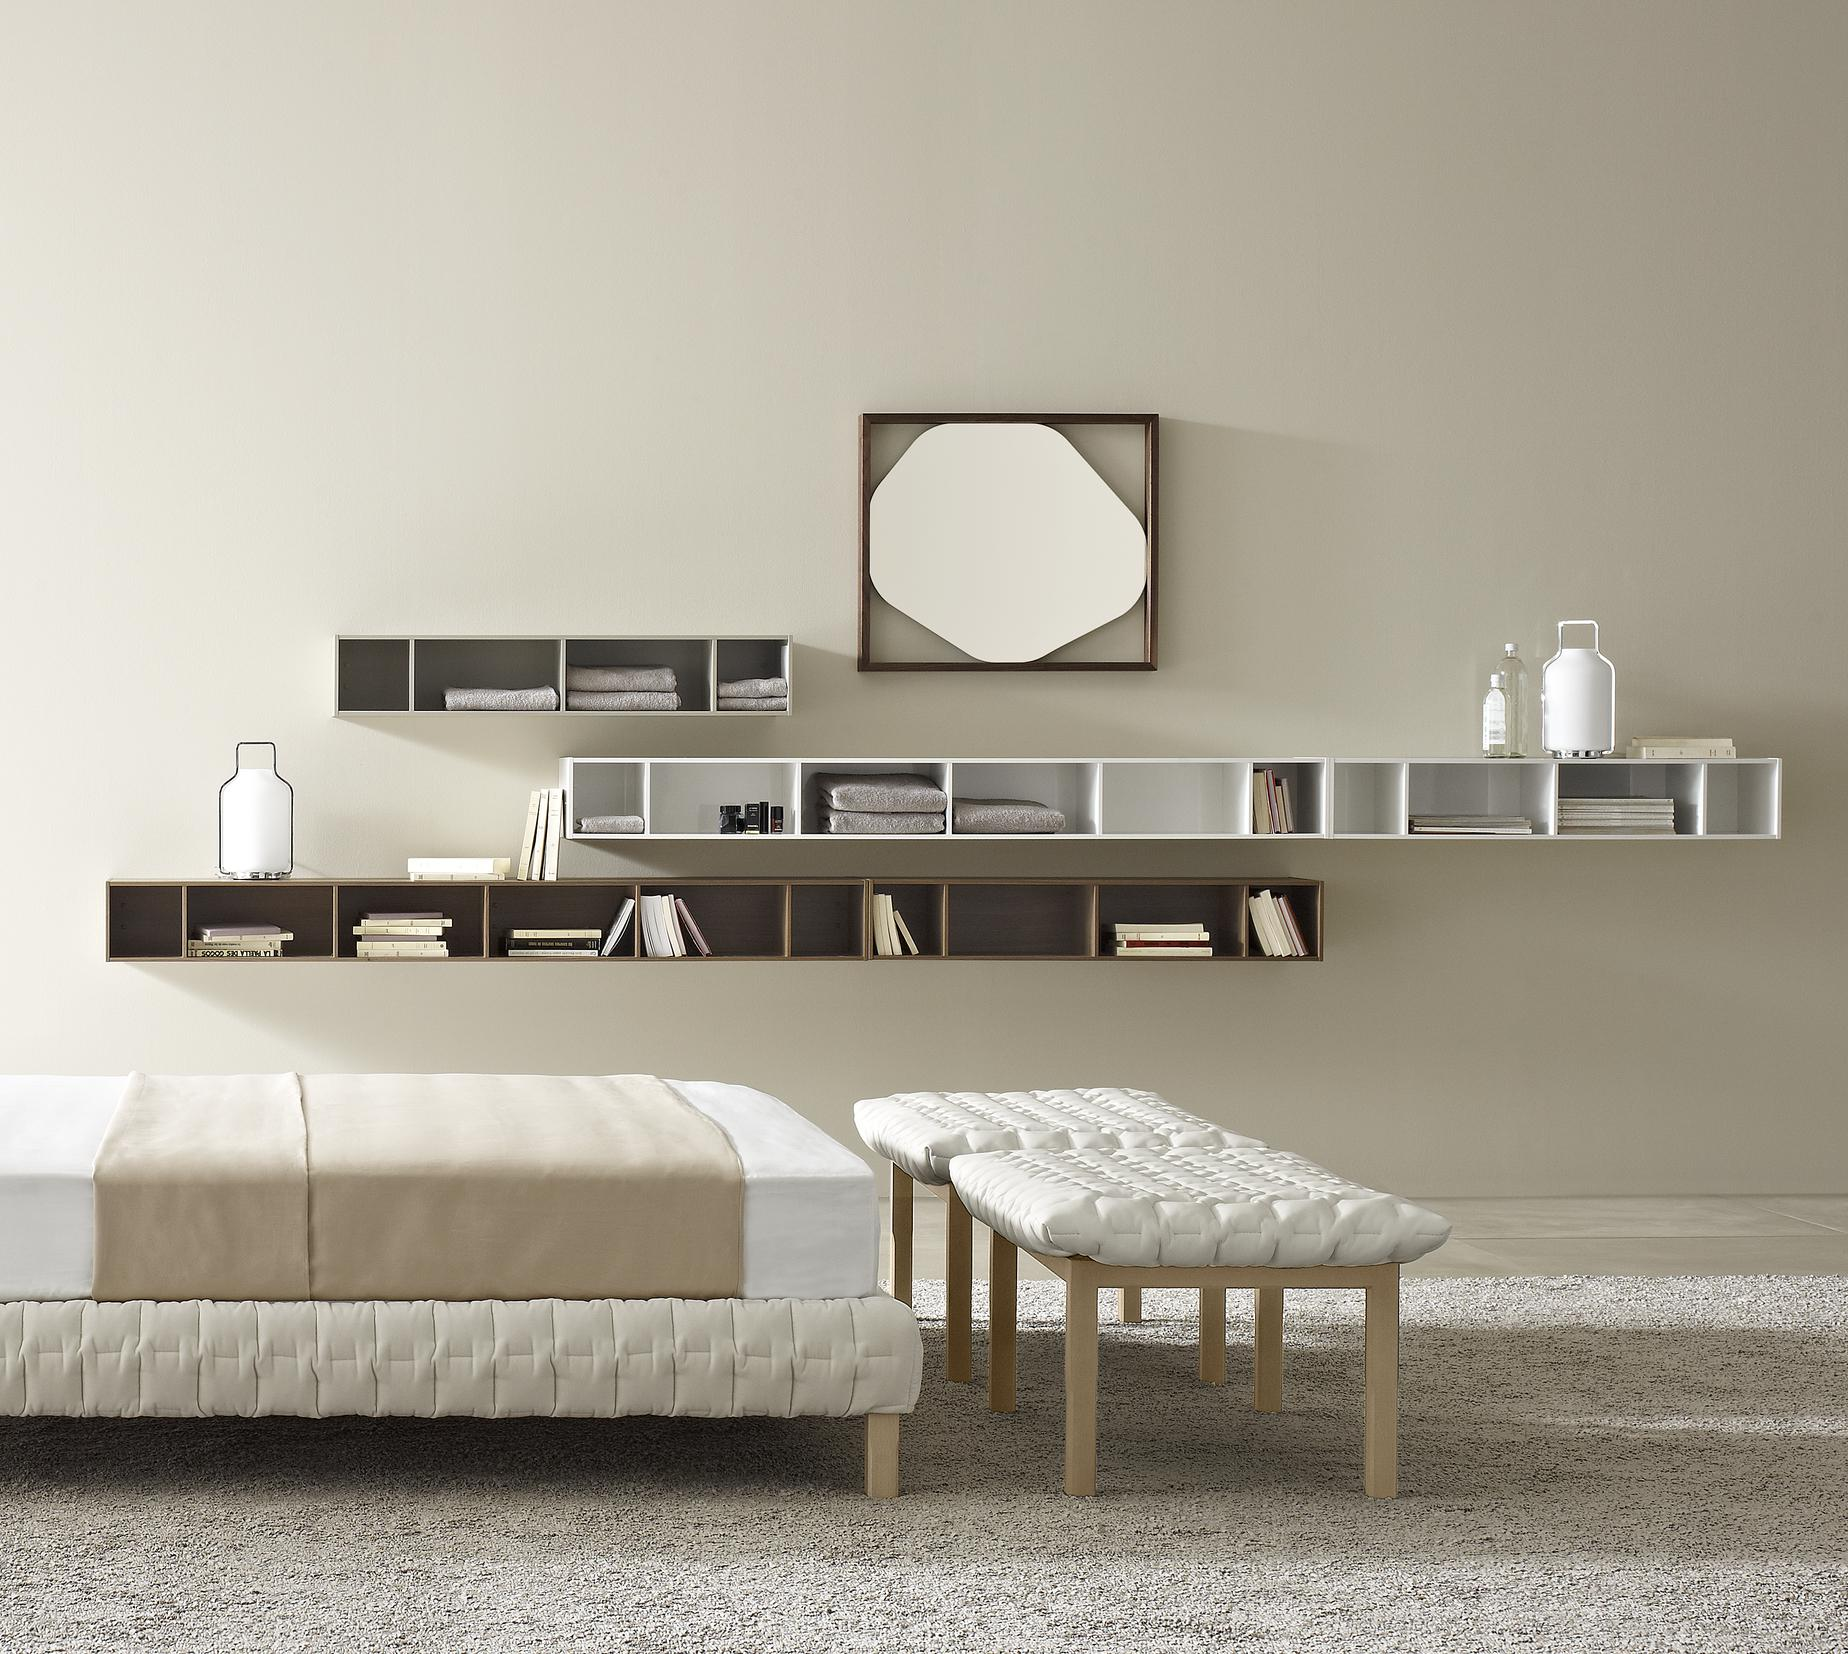 somerset lampes poser du designer eric jourdan ligne roset site officiel. Black Bedroom Furniture Sets. Home Design Ideas